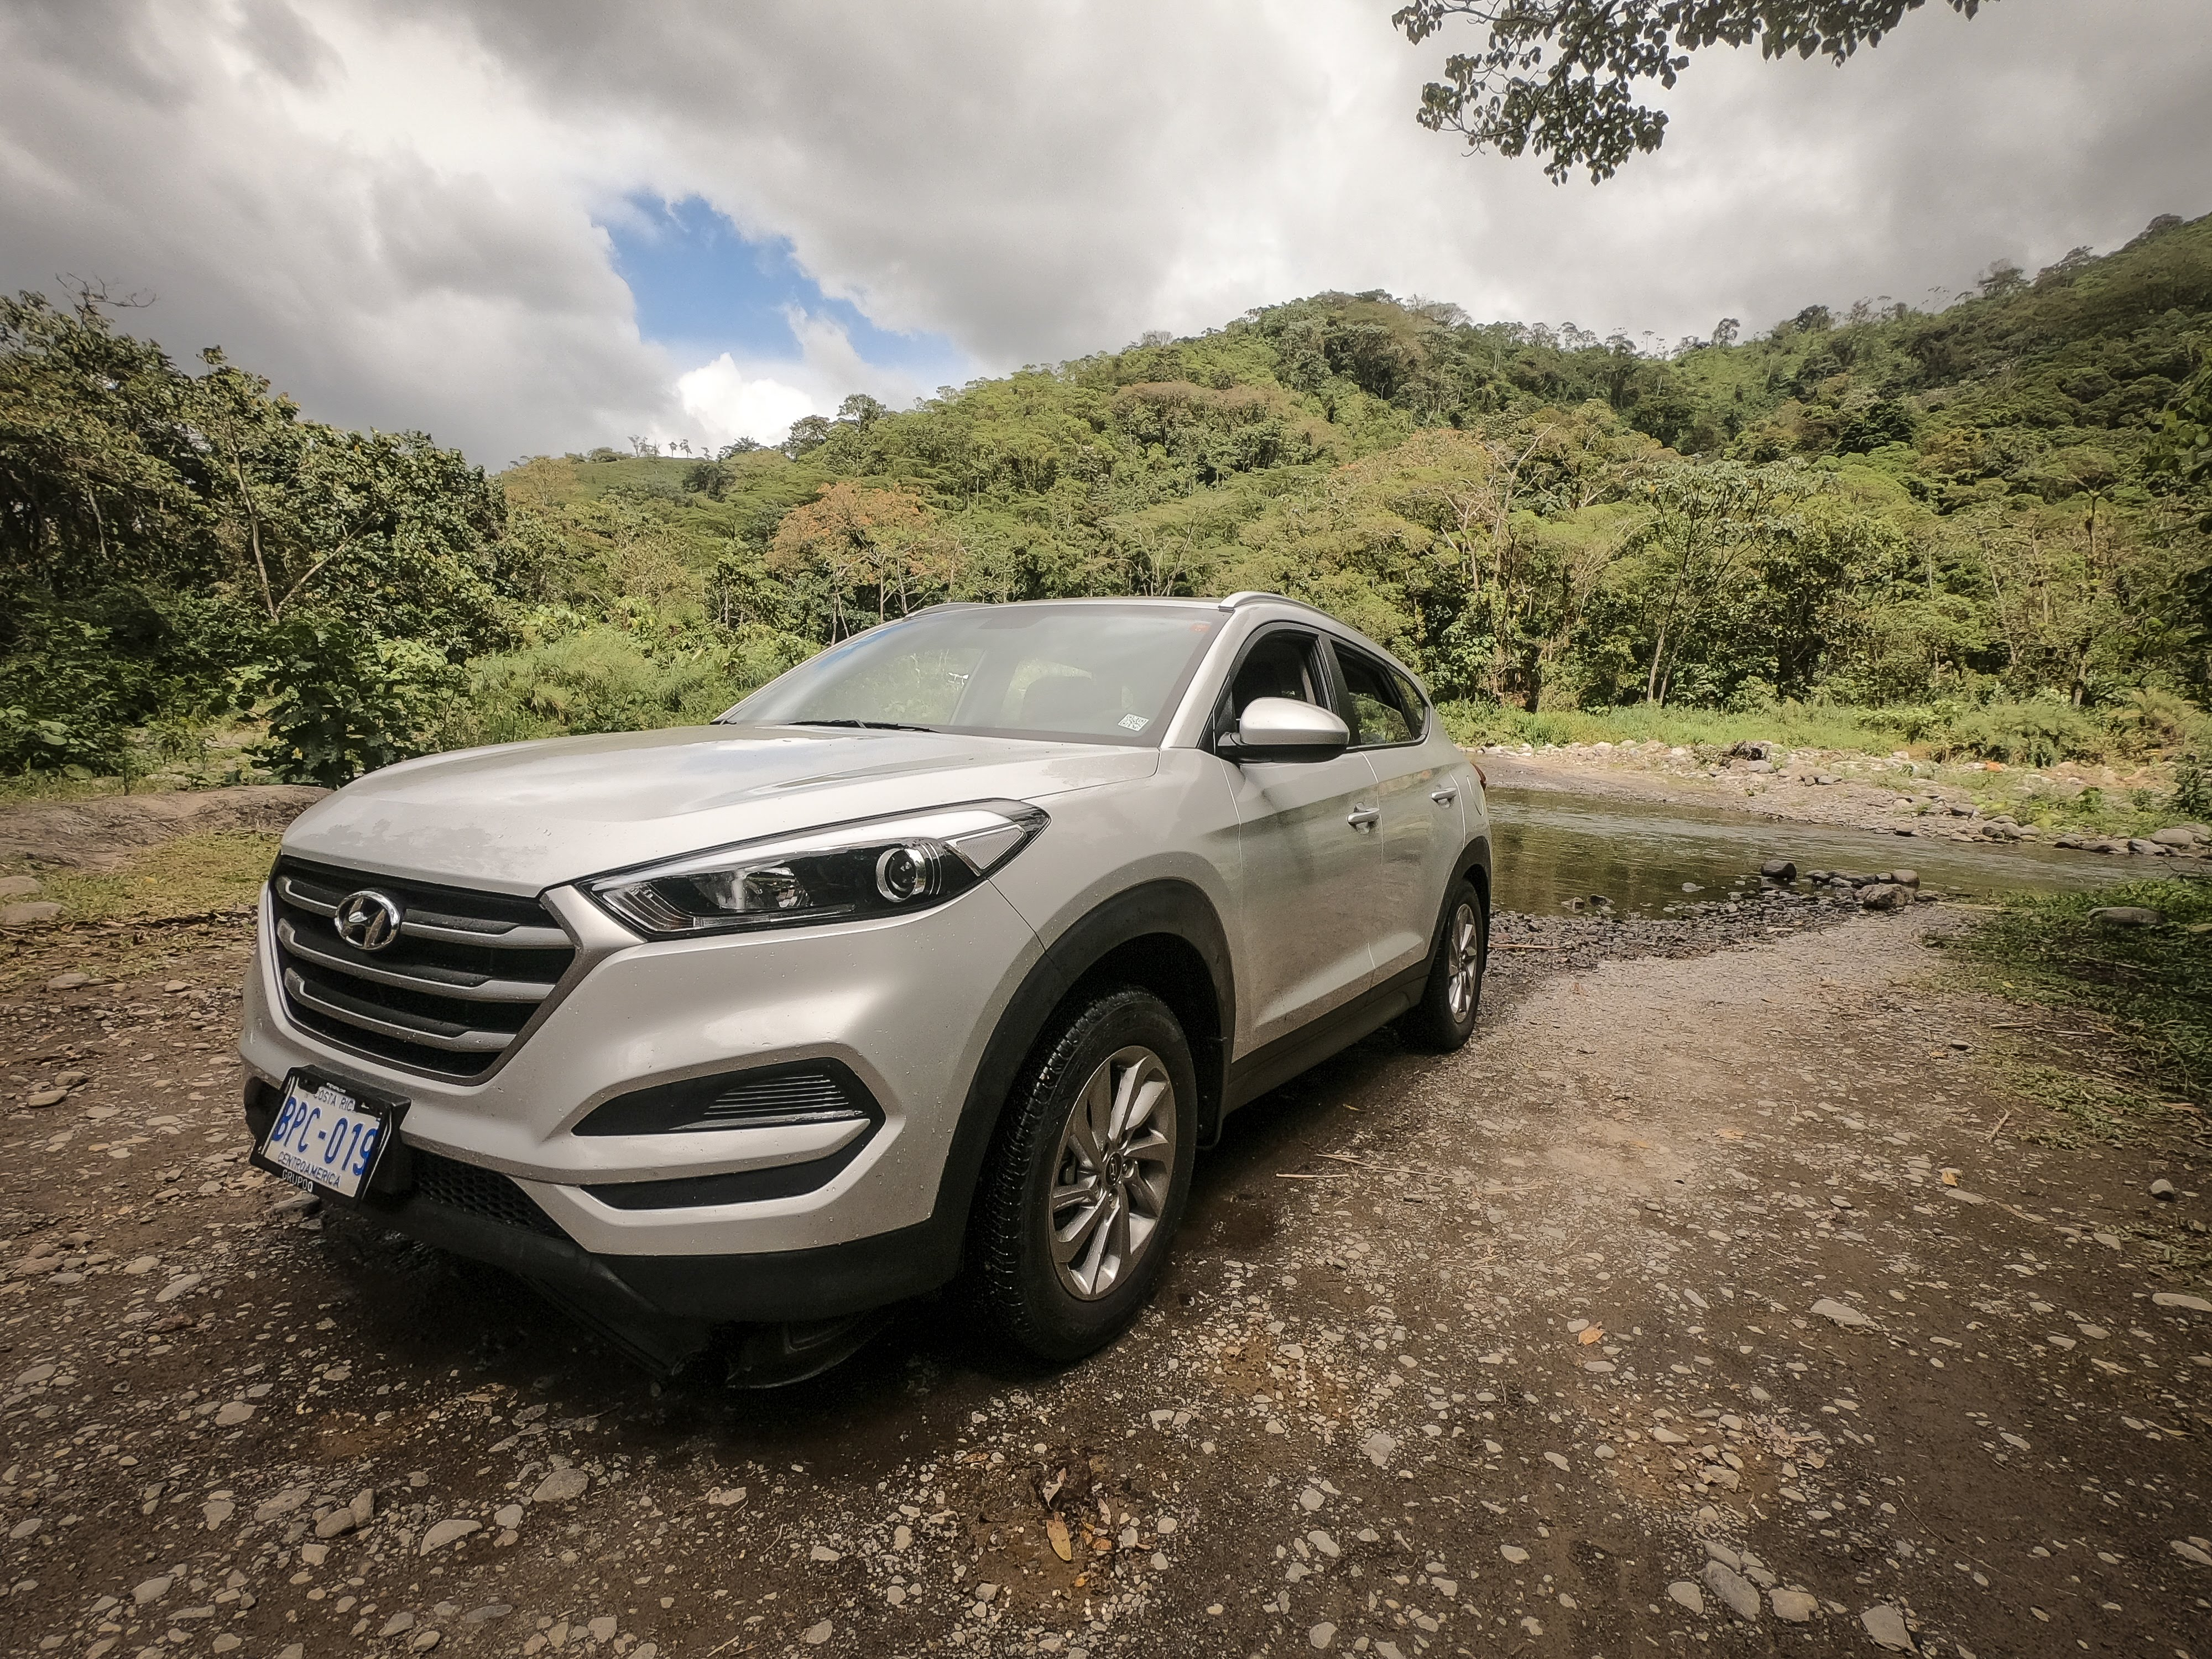 How to Rent a Car on a Budget in Costa Rica